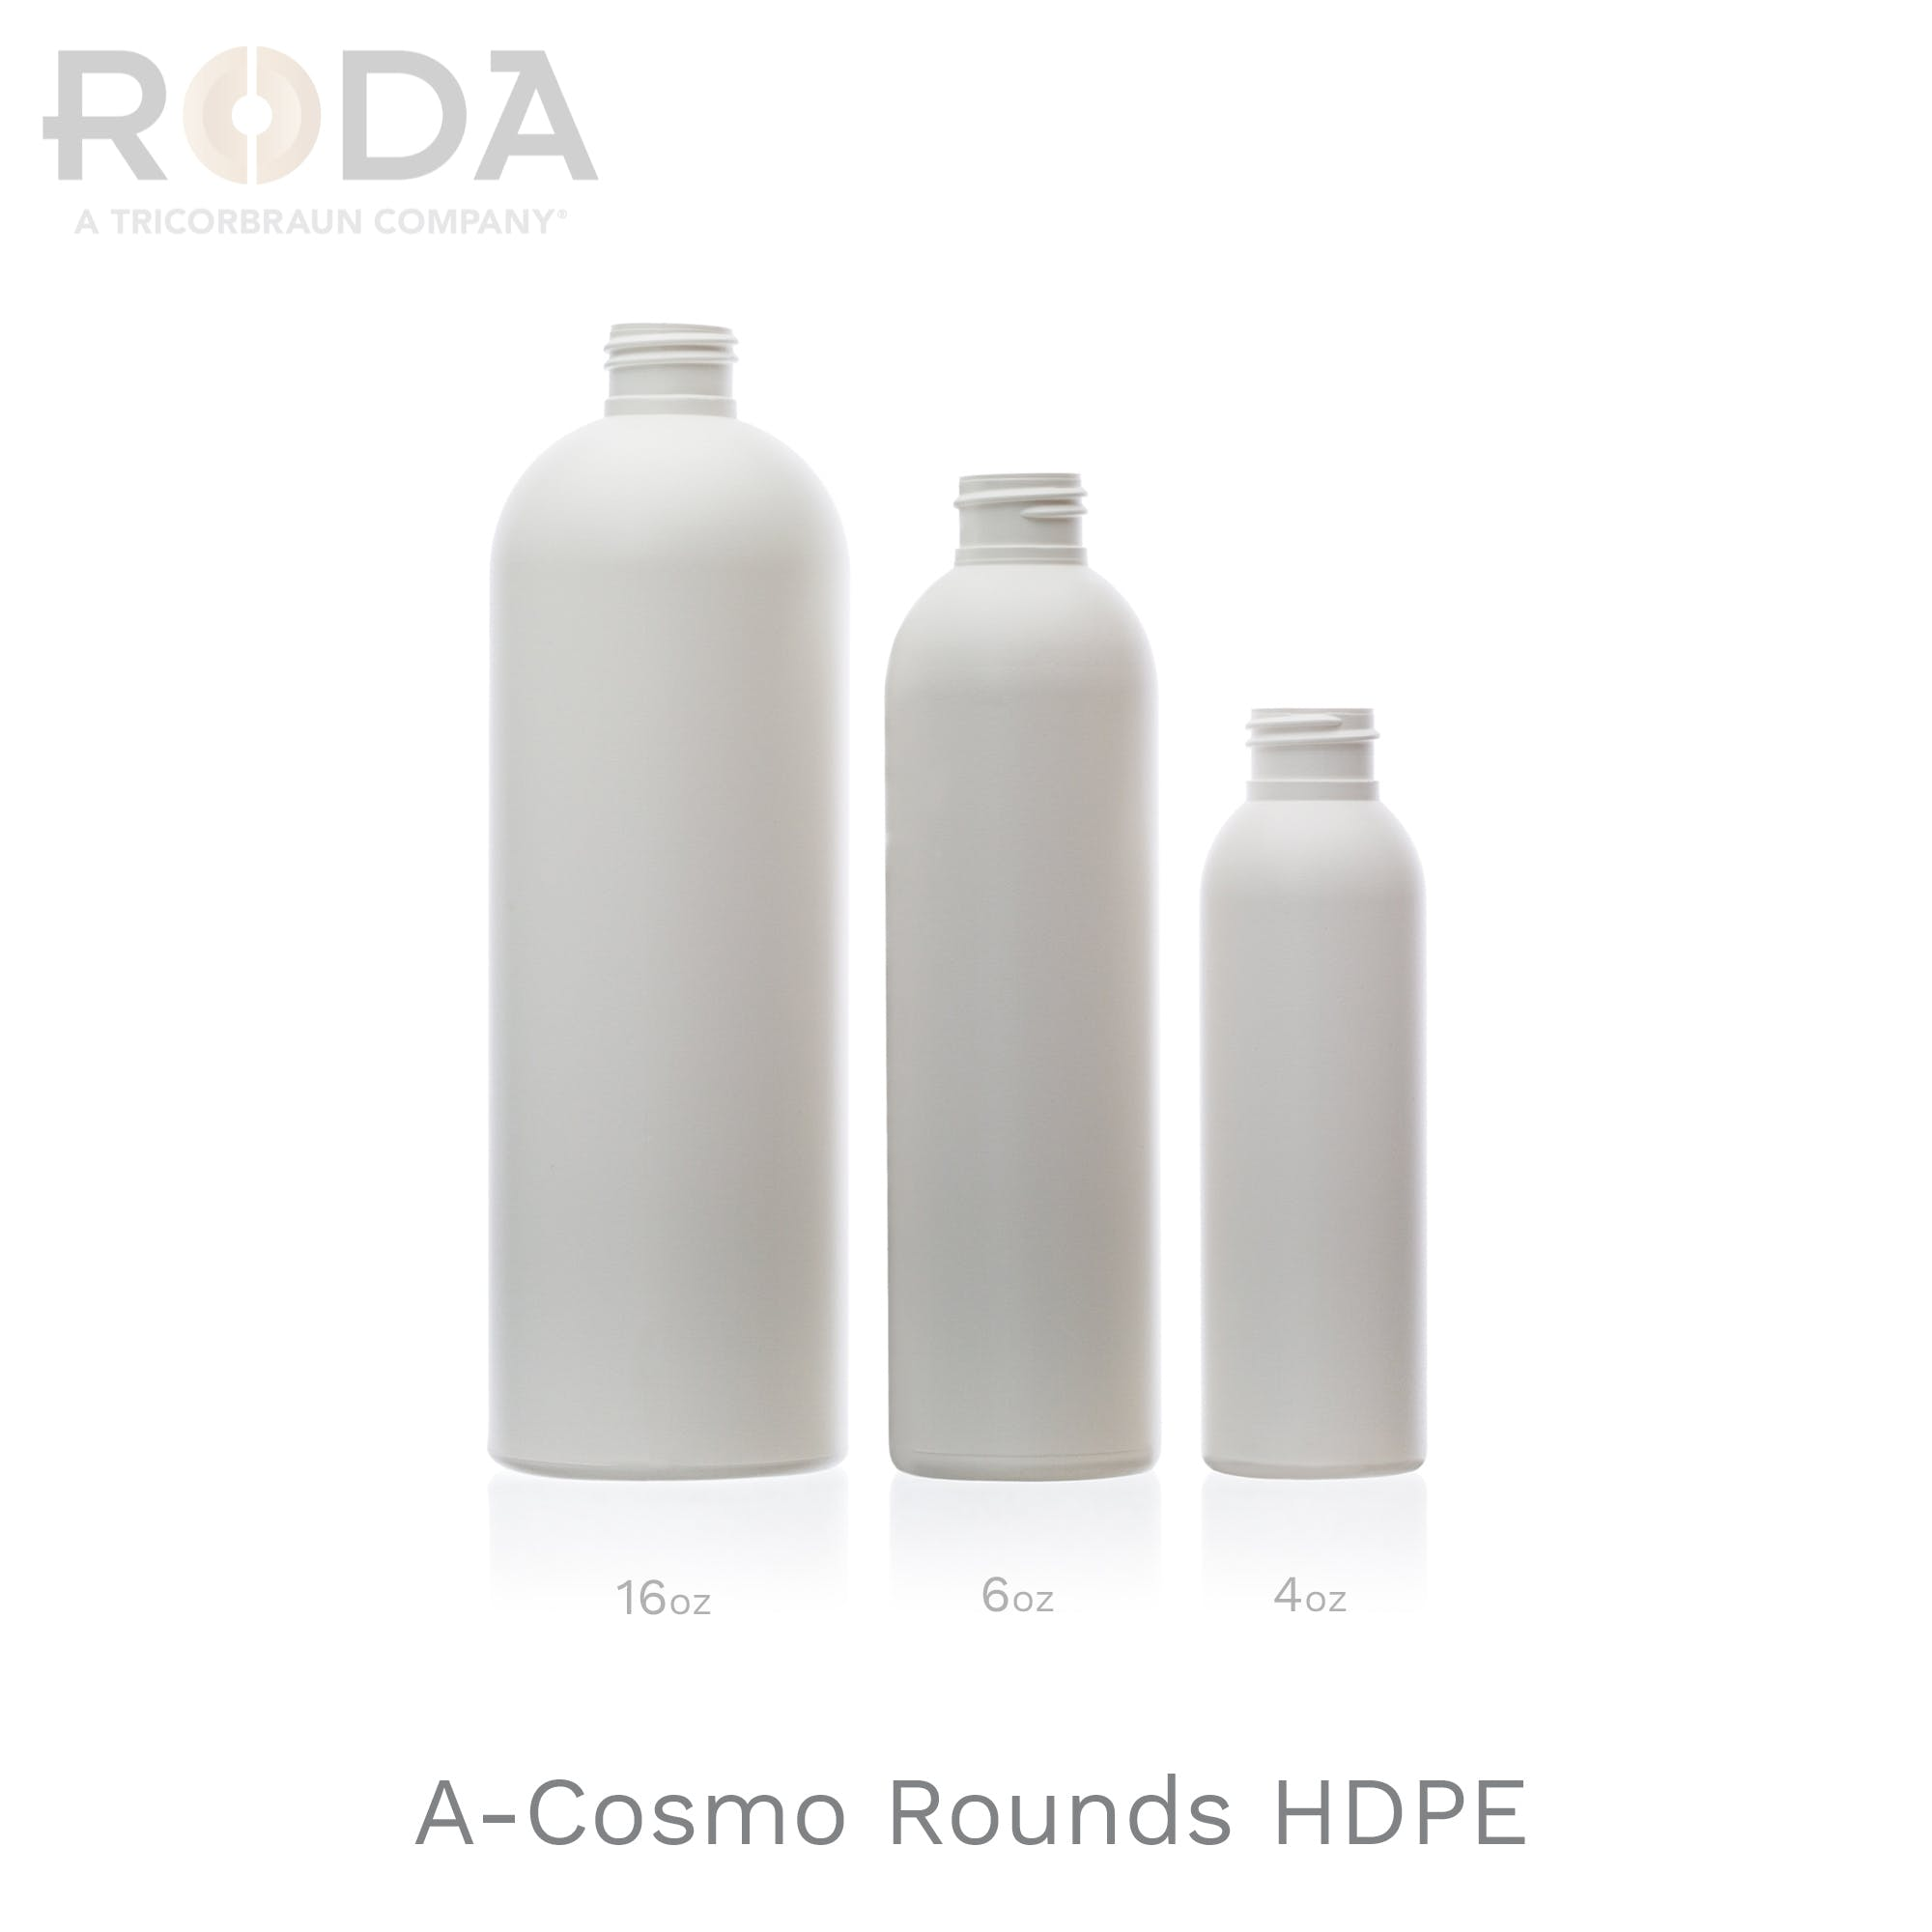 A-Cosmo Rounds HDPE